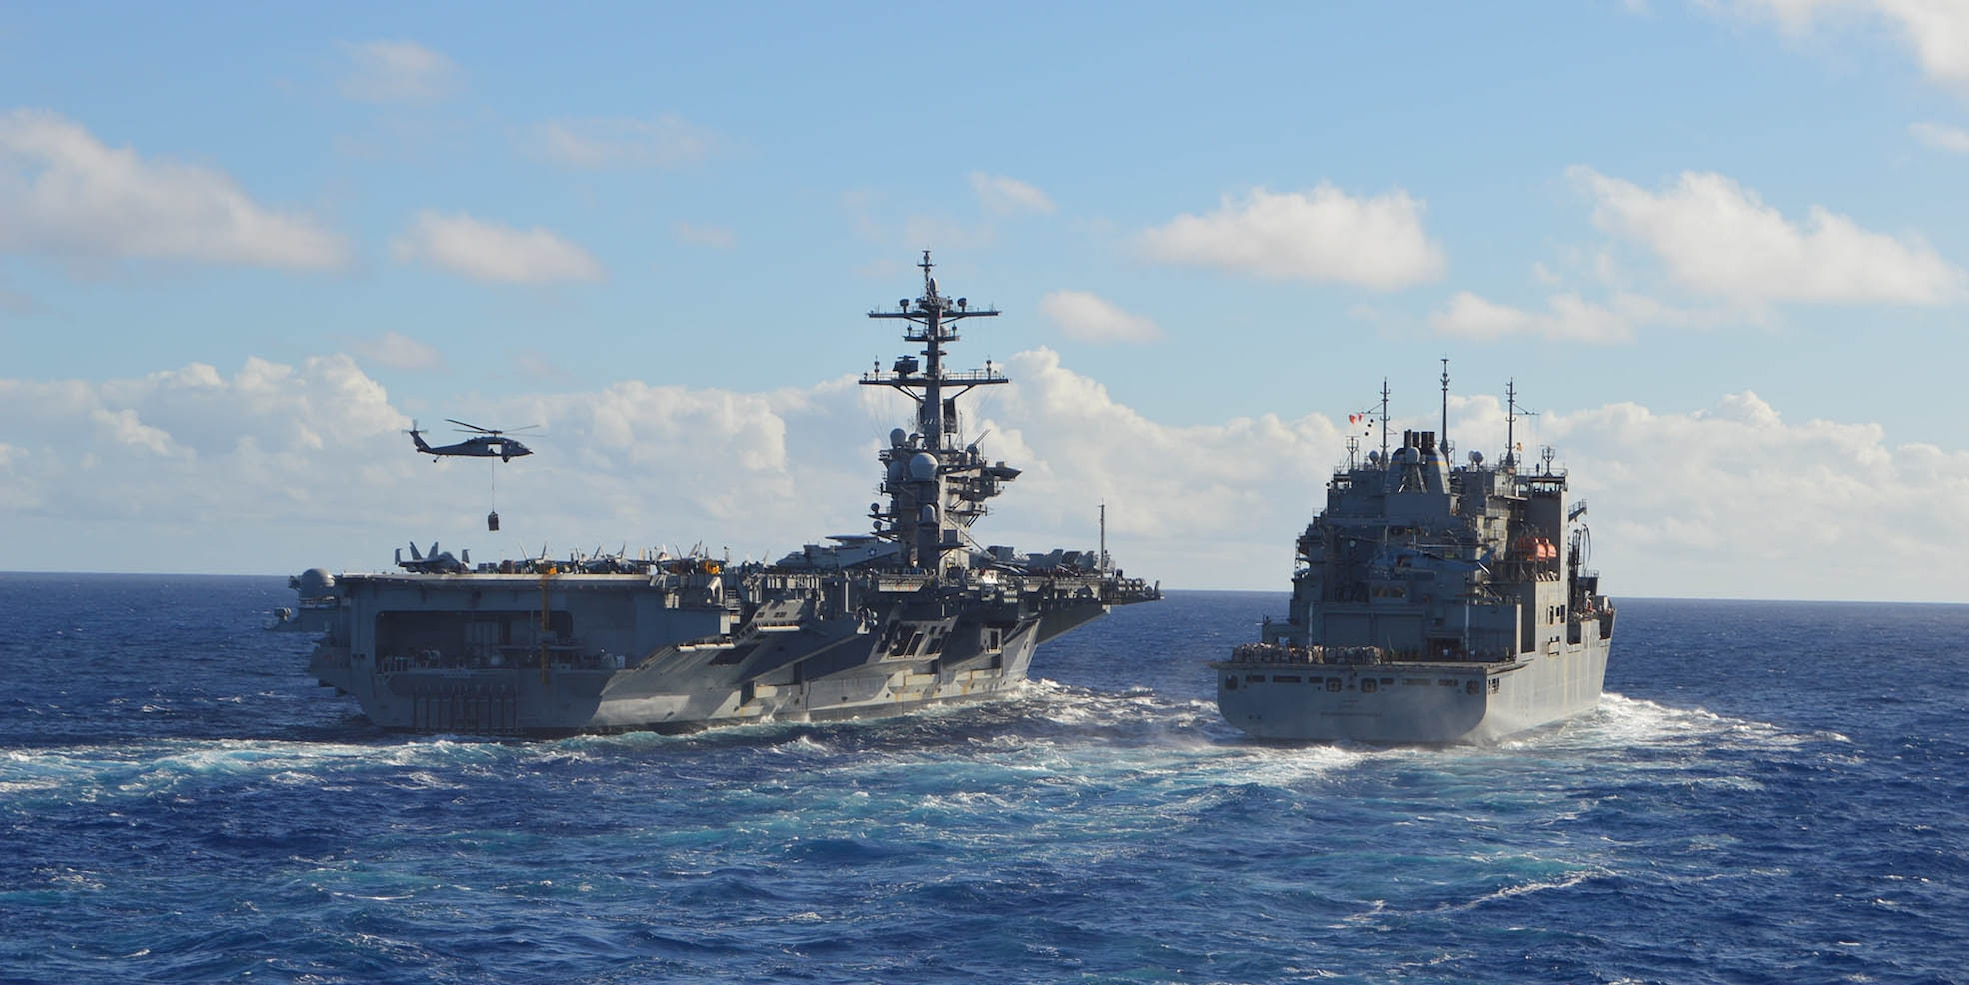 The Nimitz-class aircraft carrier USS Carl Vinson (CVN 70) conducts a replenishment-at-sea with Dry Cargo and Ammunition Ship USNS Washington Chambers (T-AKE 11) on Aug. 13, 2021